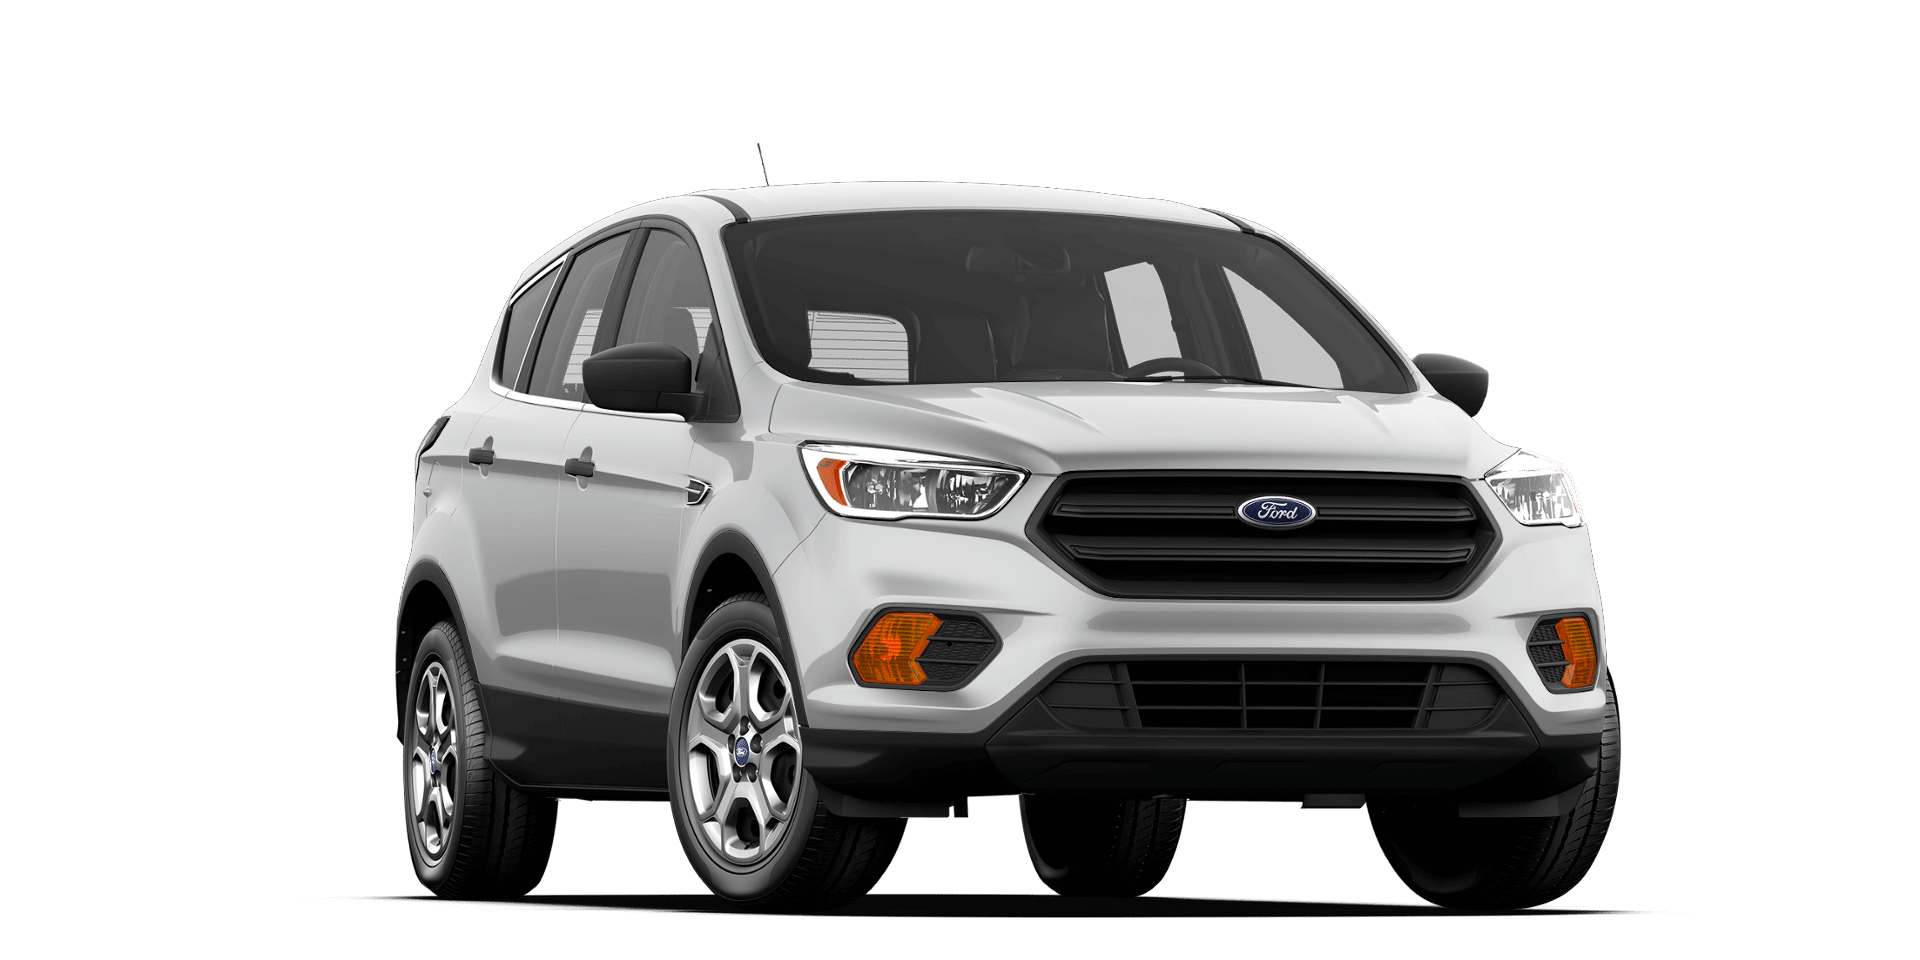 2017 ford escape png. Info msrp packages